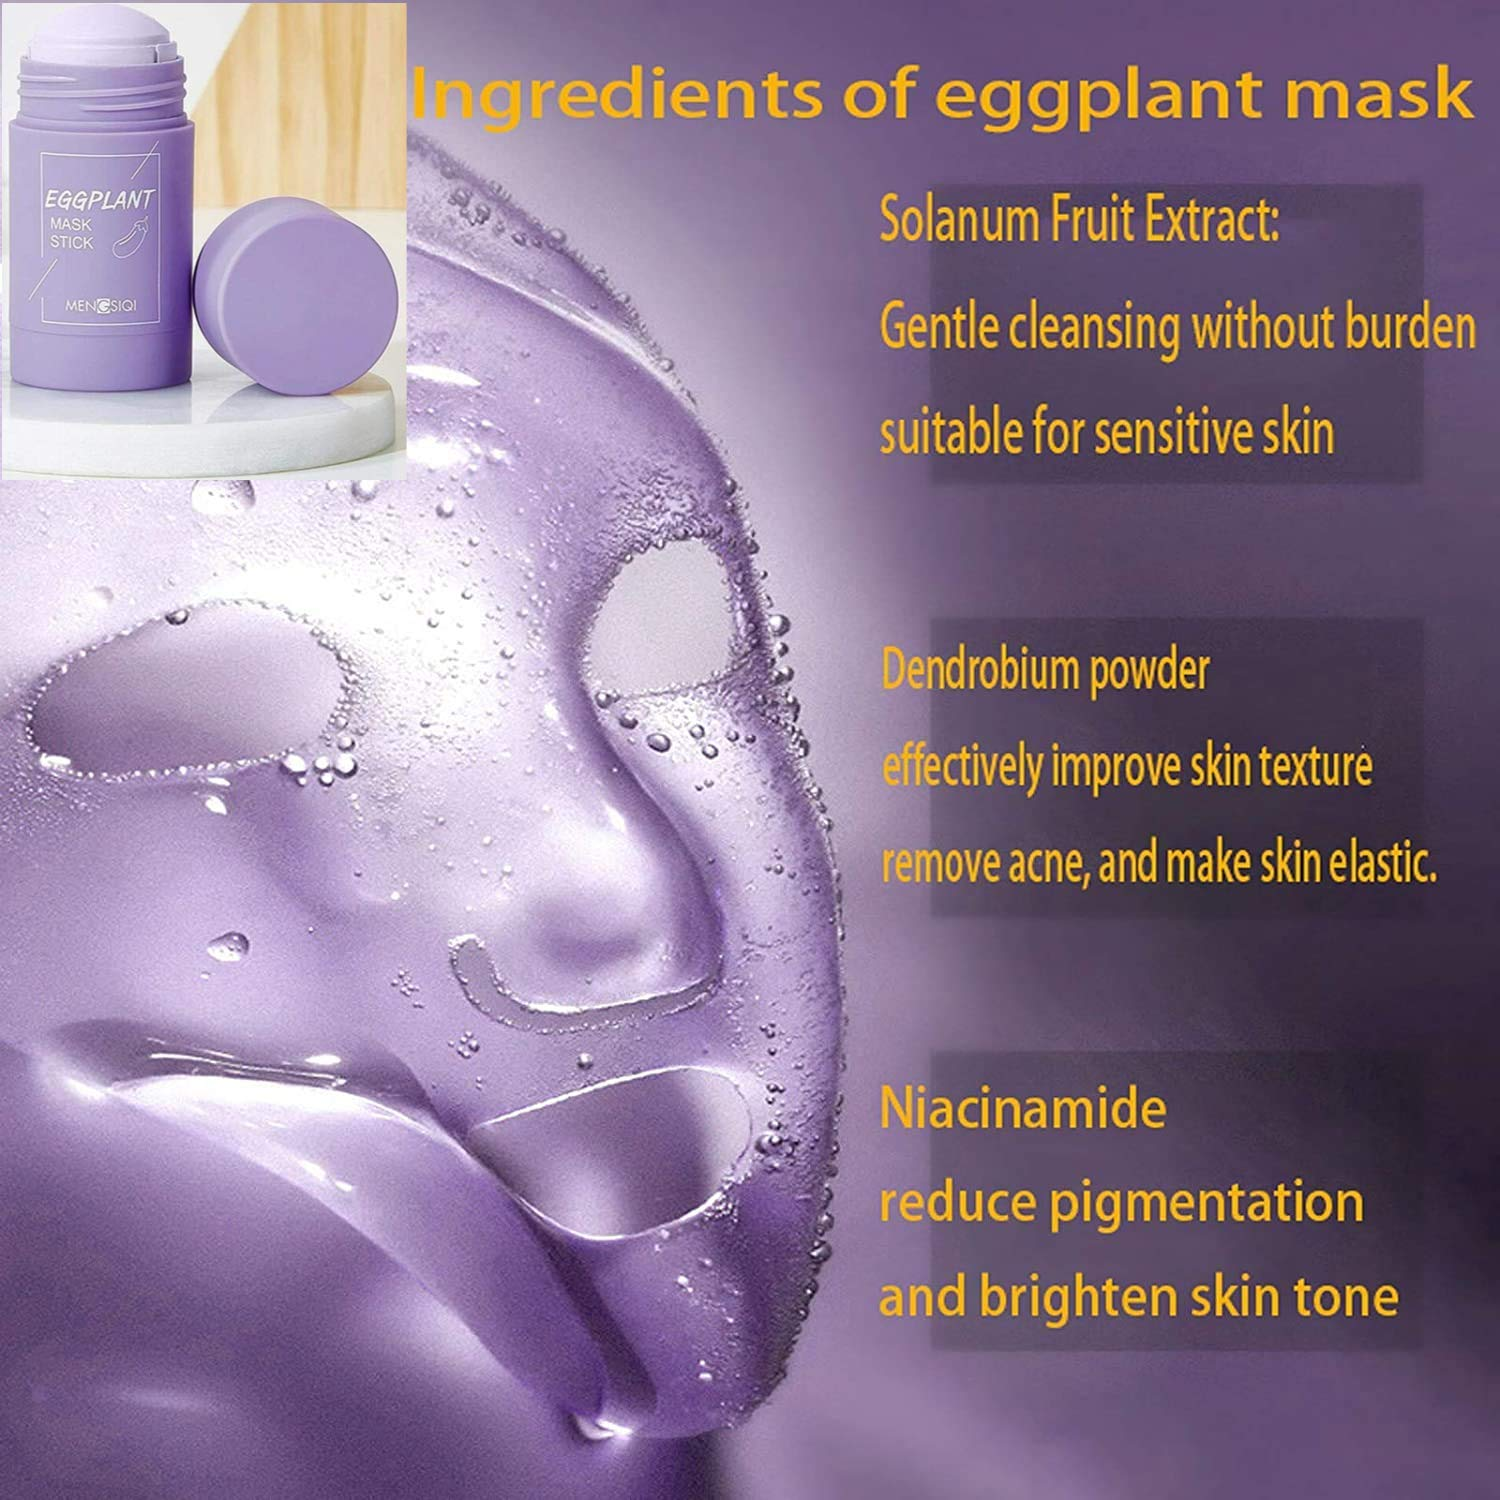 Ingredients of Cleansing Facial Mask